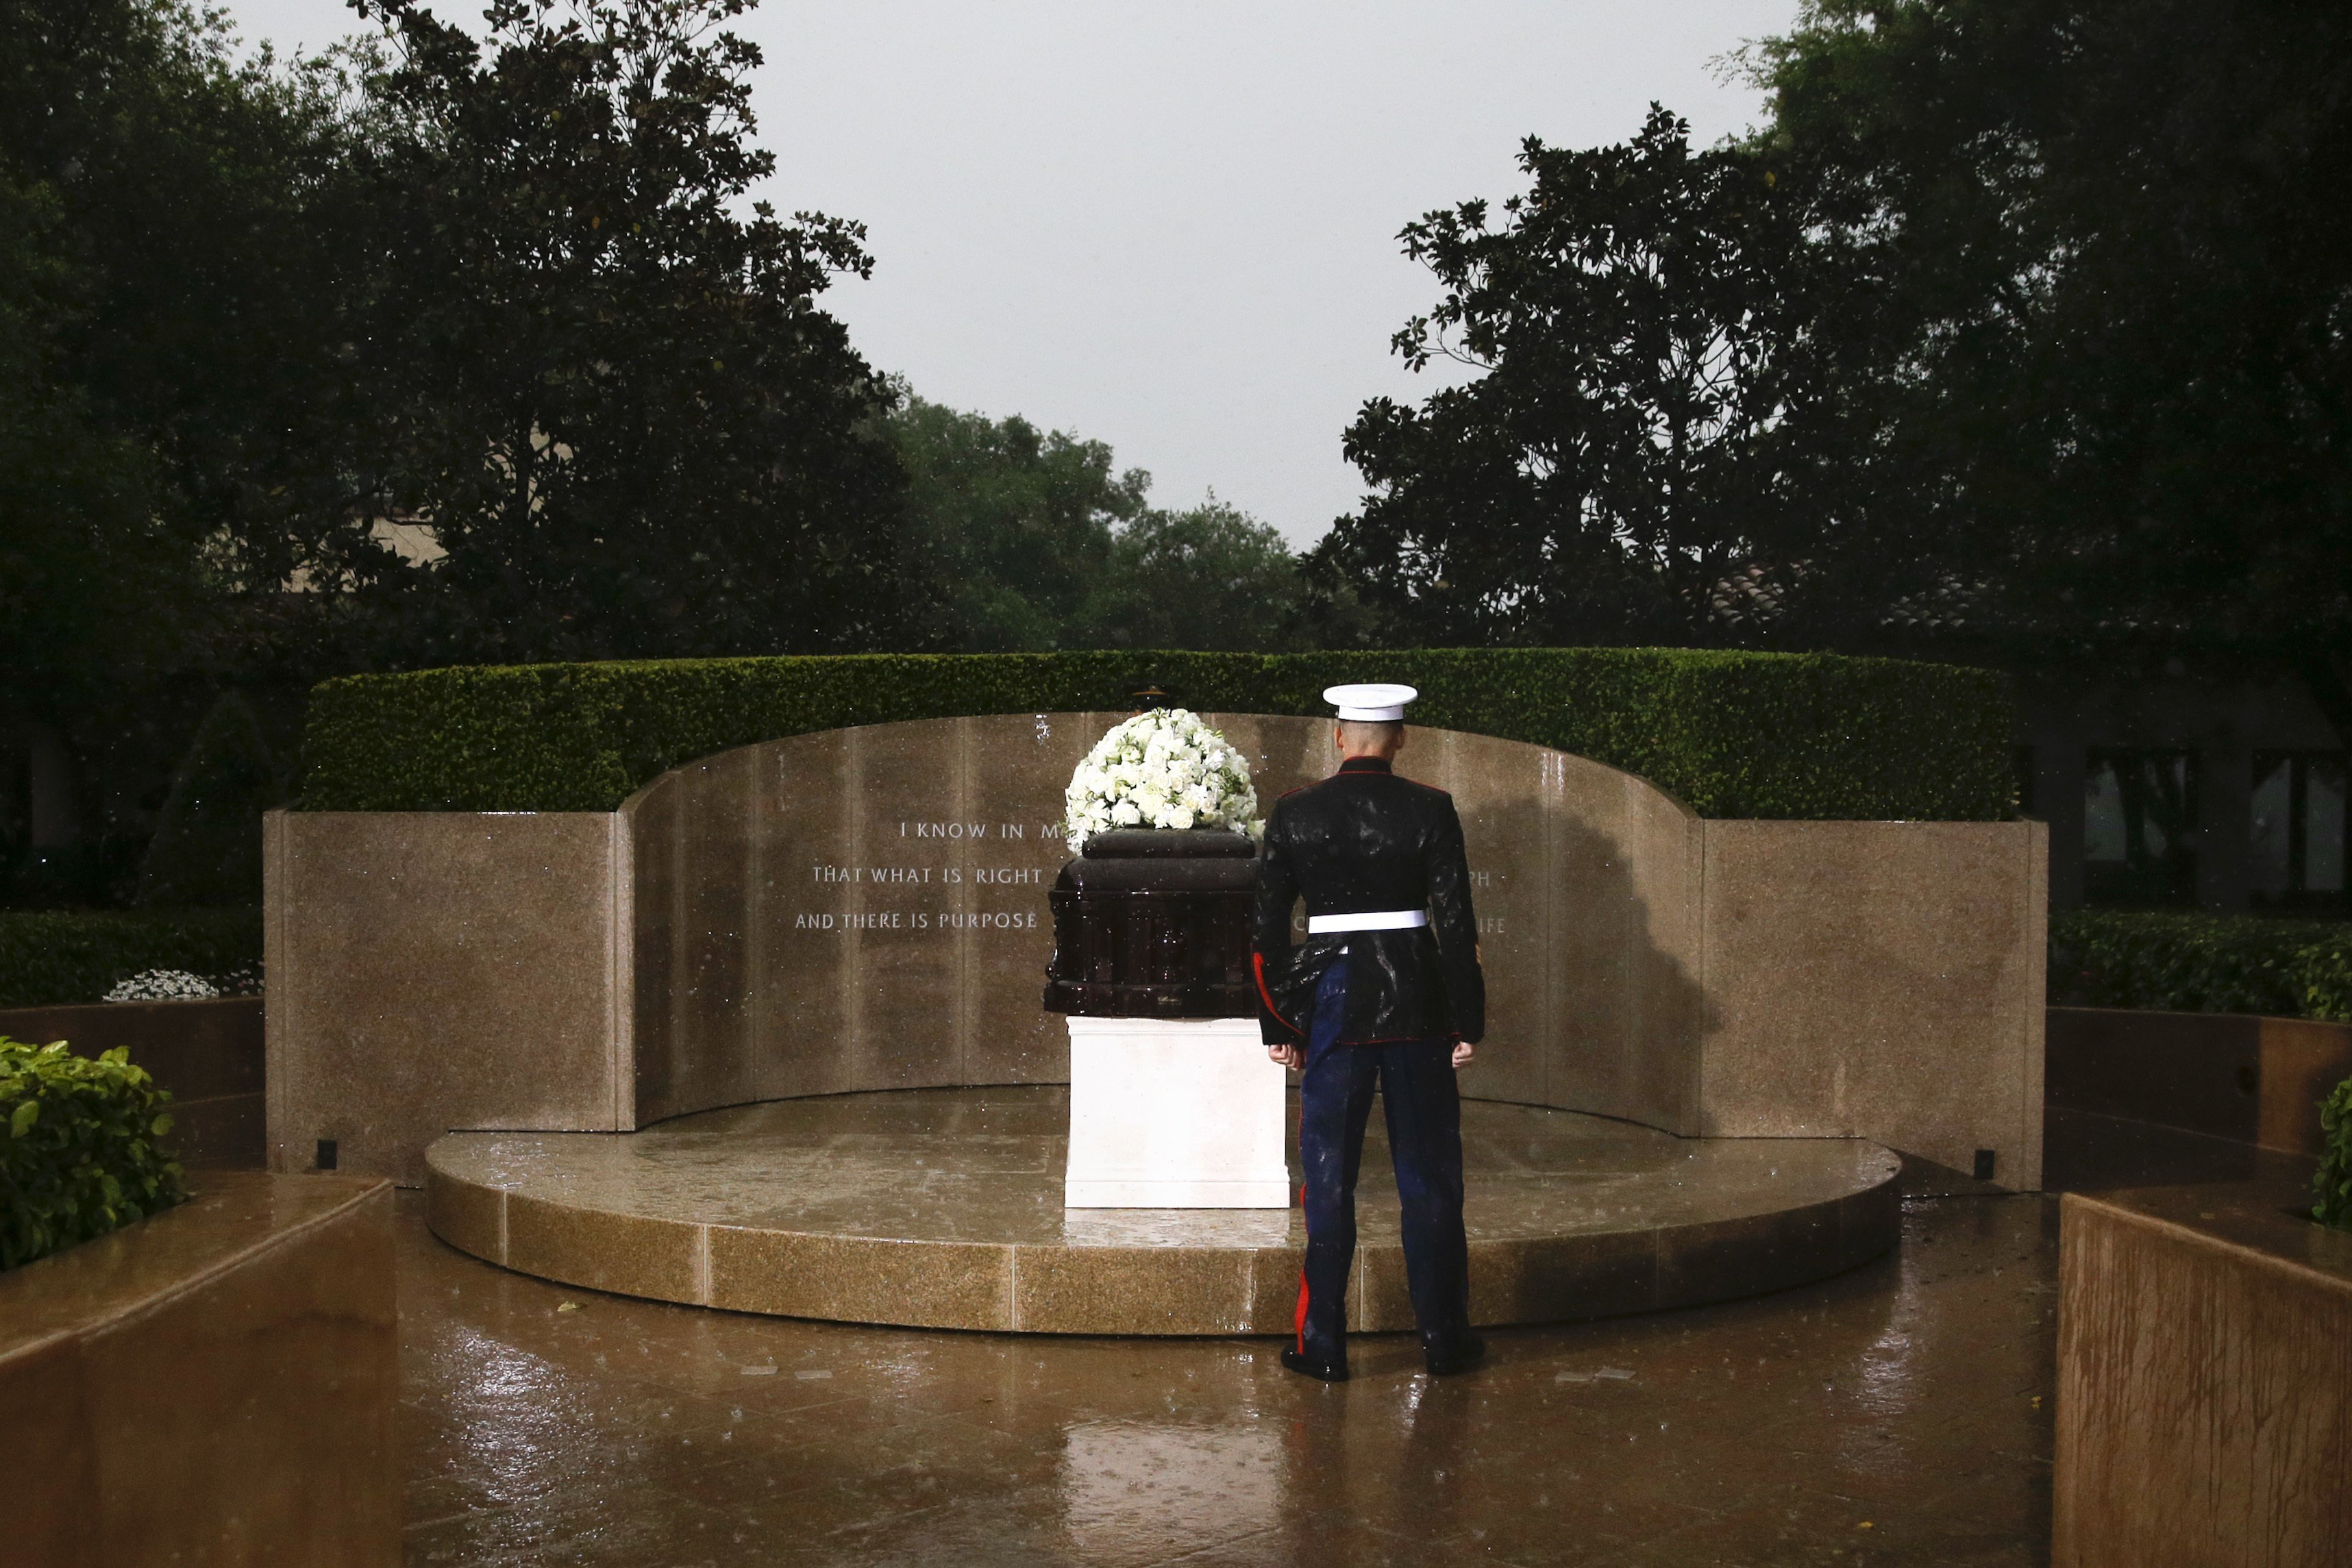 A Marine pays his respects in the rain while standing in front of the casket carrying former First Lady Nancy Reagan at the Ronald Reagan Presidential Library, March 11, 2016.